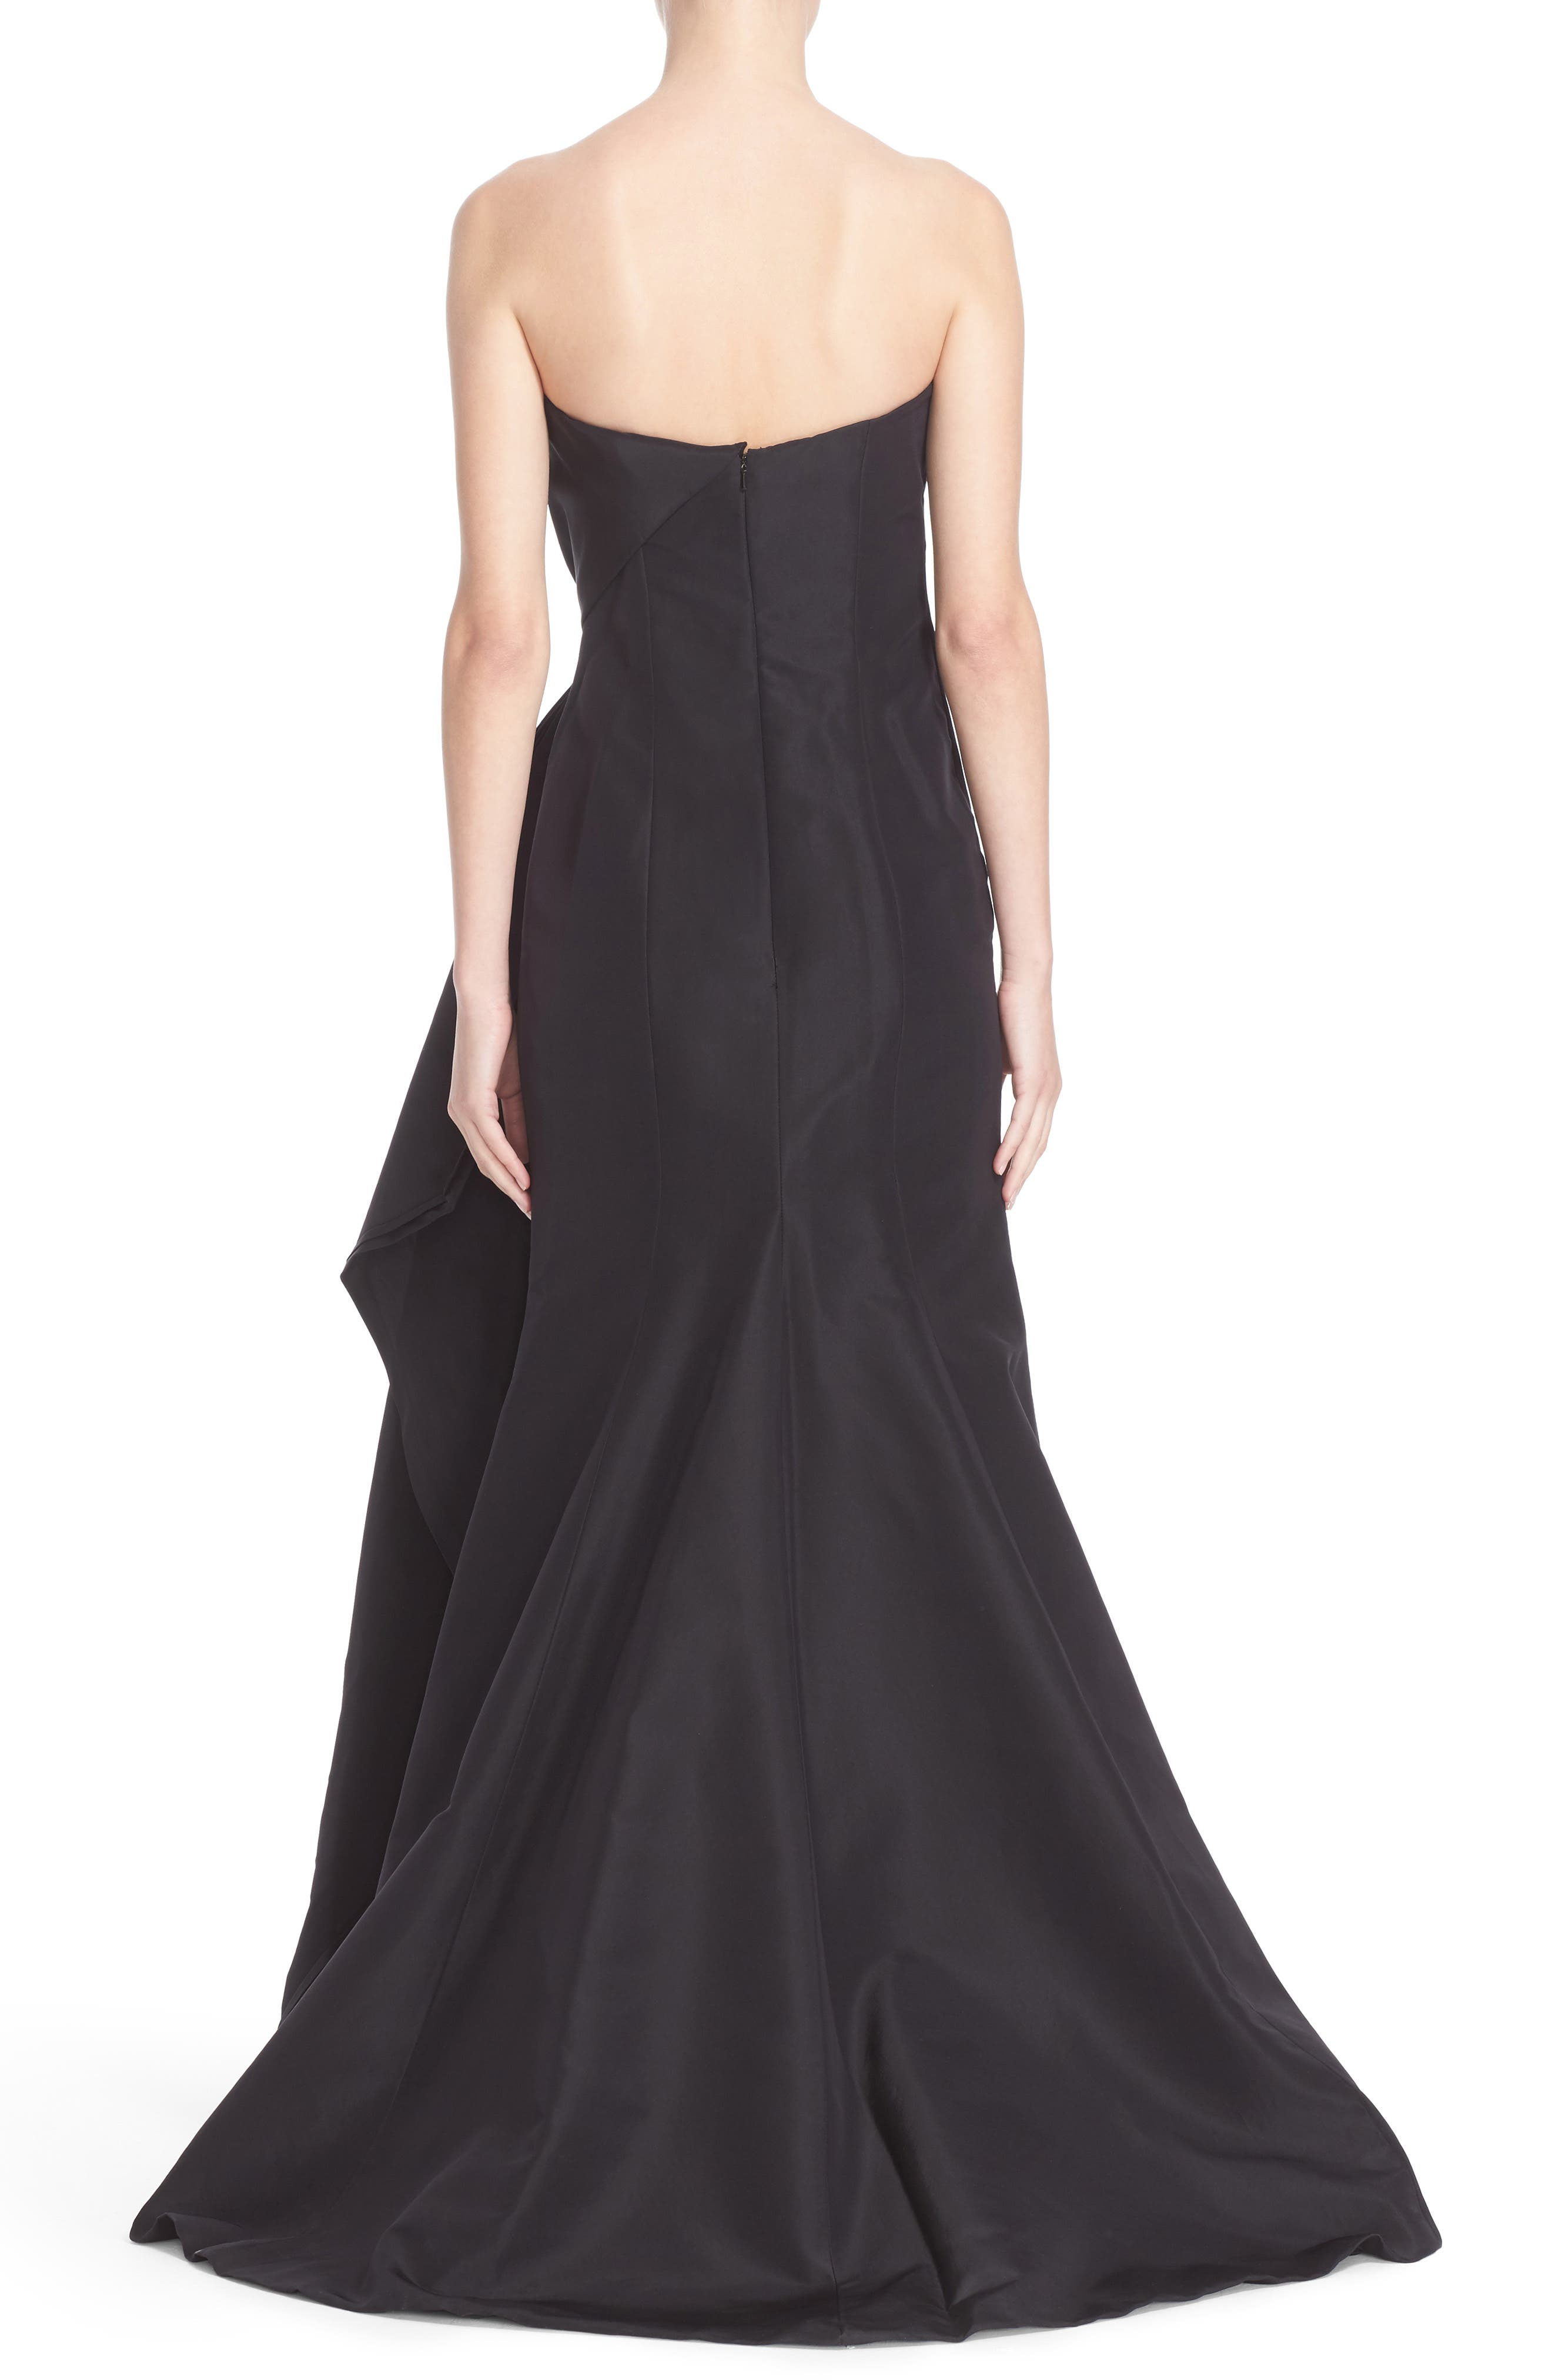 Bow Detail Strapless Silk Faille Gown,                             Alternate thumbnail 2, color,                             001